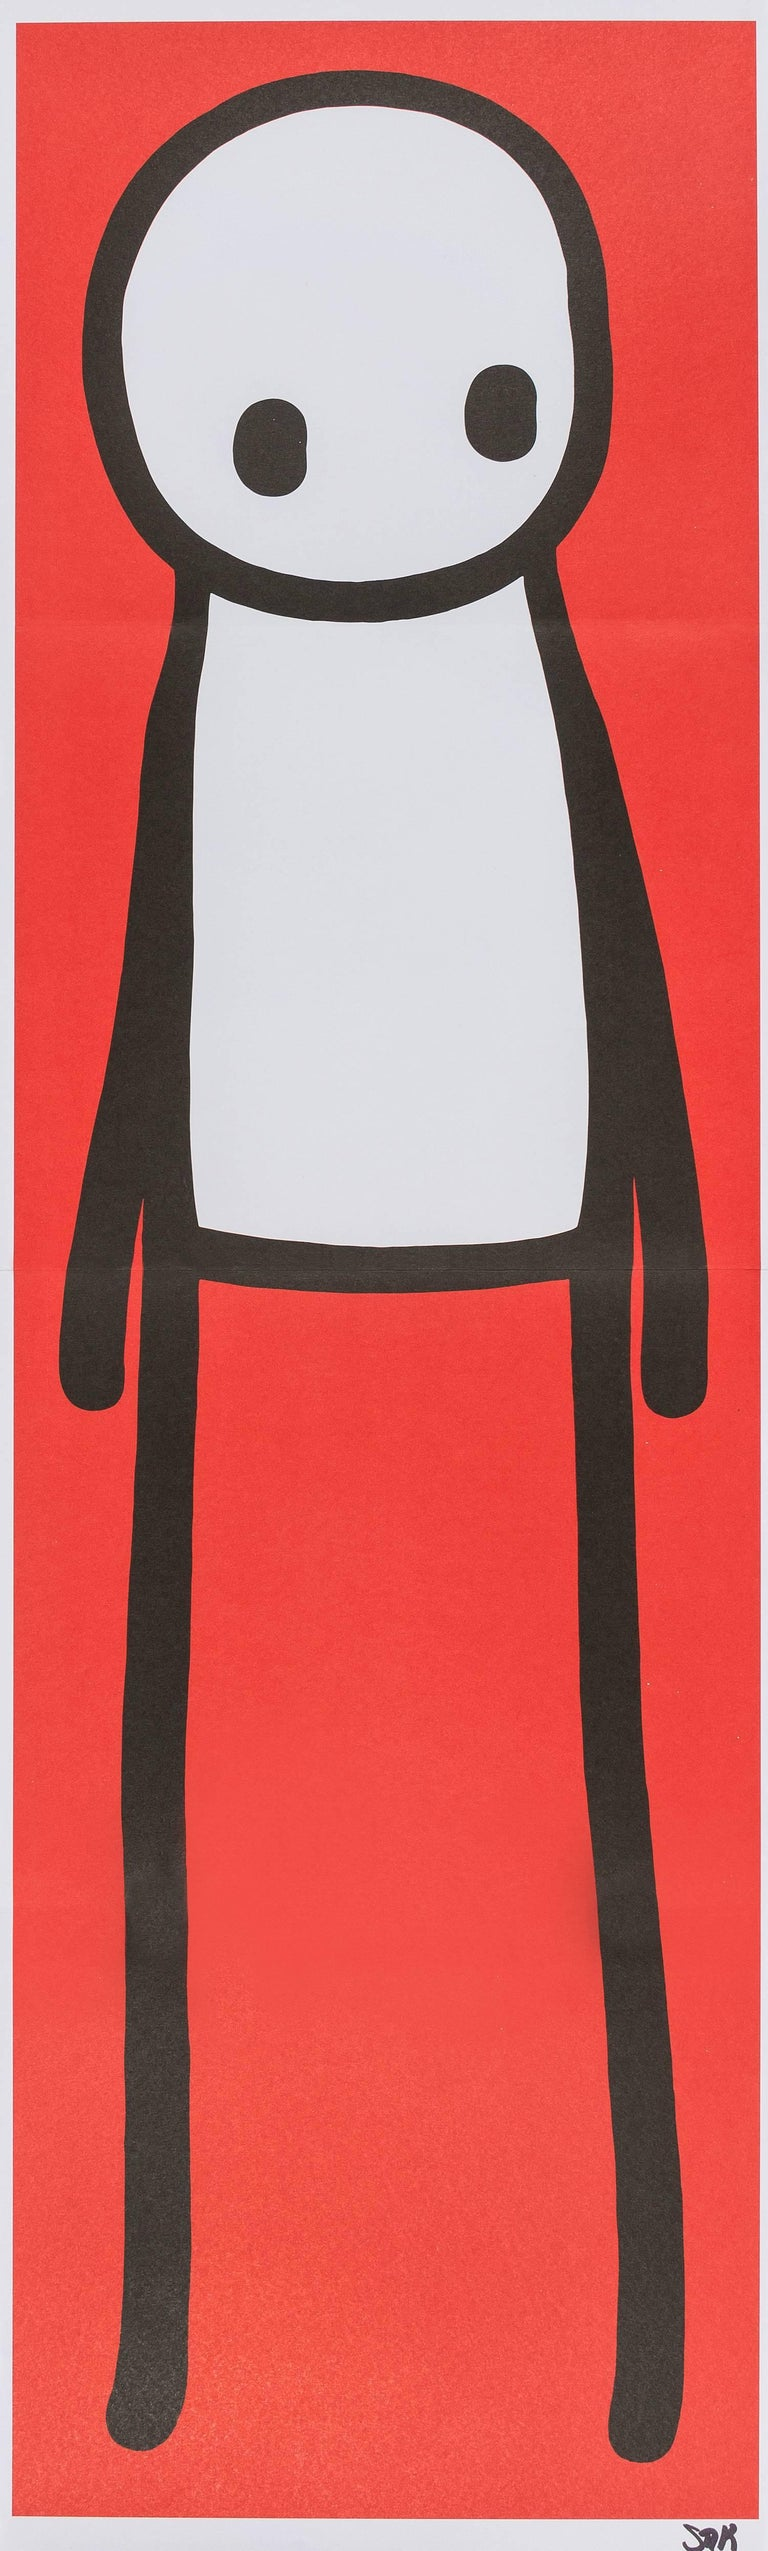 STIK  Standing Figure (Red), 2015 Offset lithograph printed in colours Signed in black felt tip Sheet: 75.5 x 24.0 cm (30.5 x 9.5 in)  Accompanied with the book 'STIK', first edition, signed and doodled by the artist in black ink, 267 x 222mm (10 ½